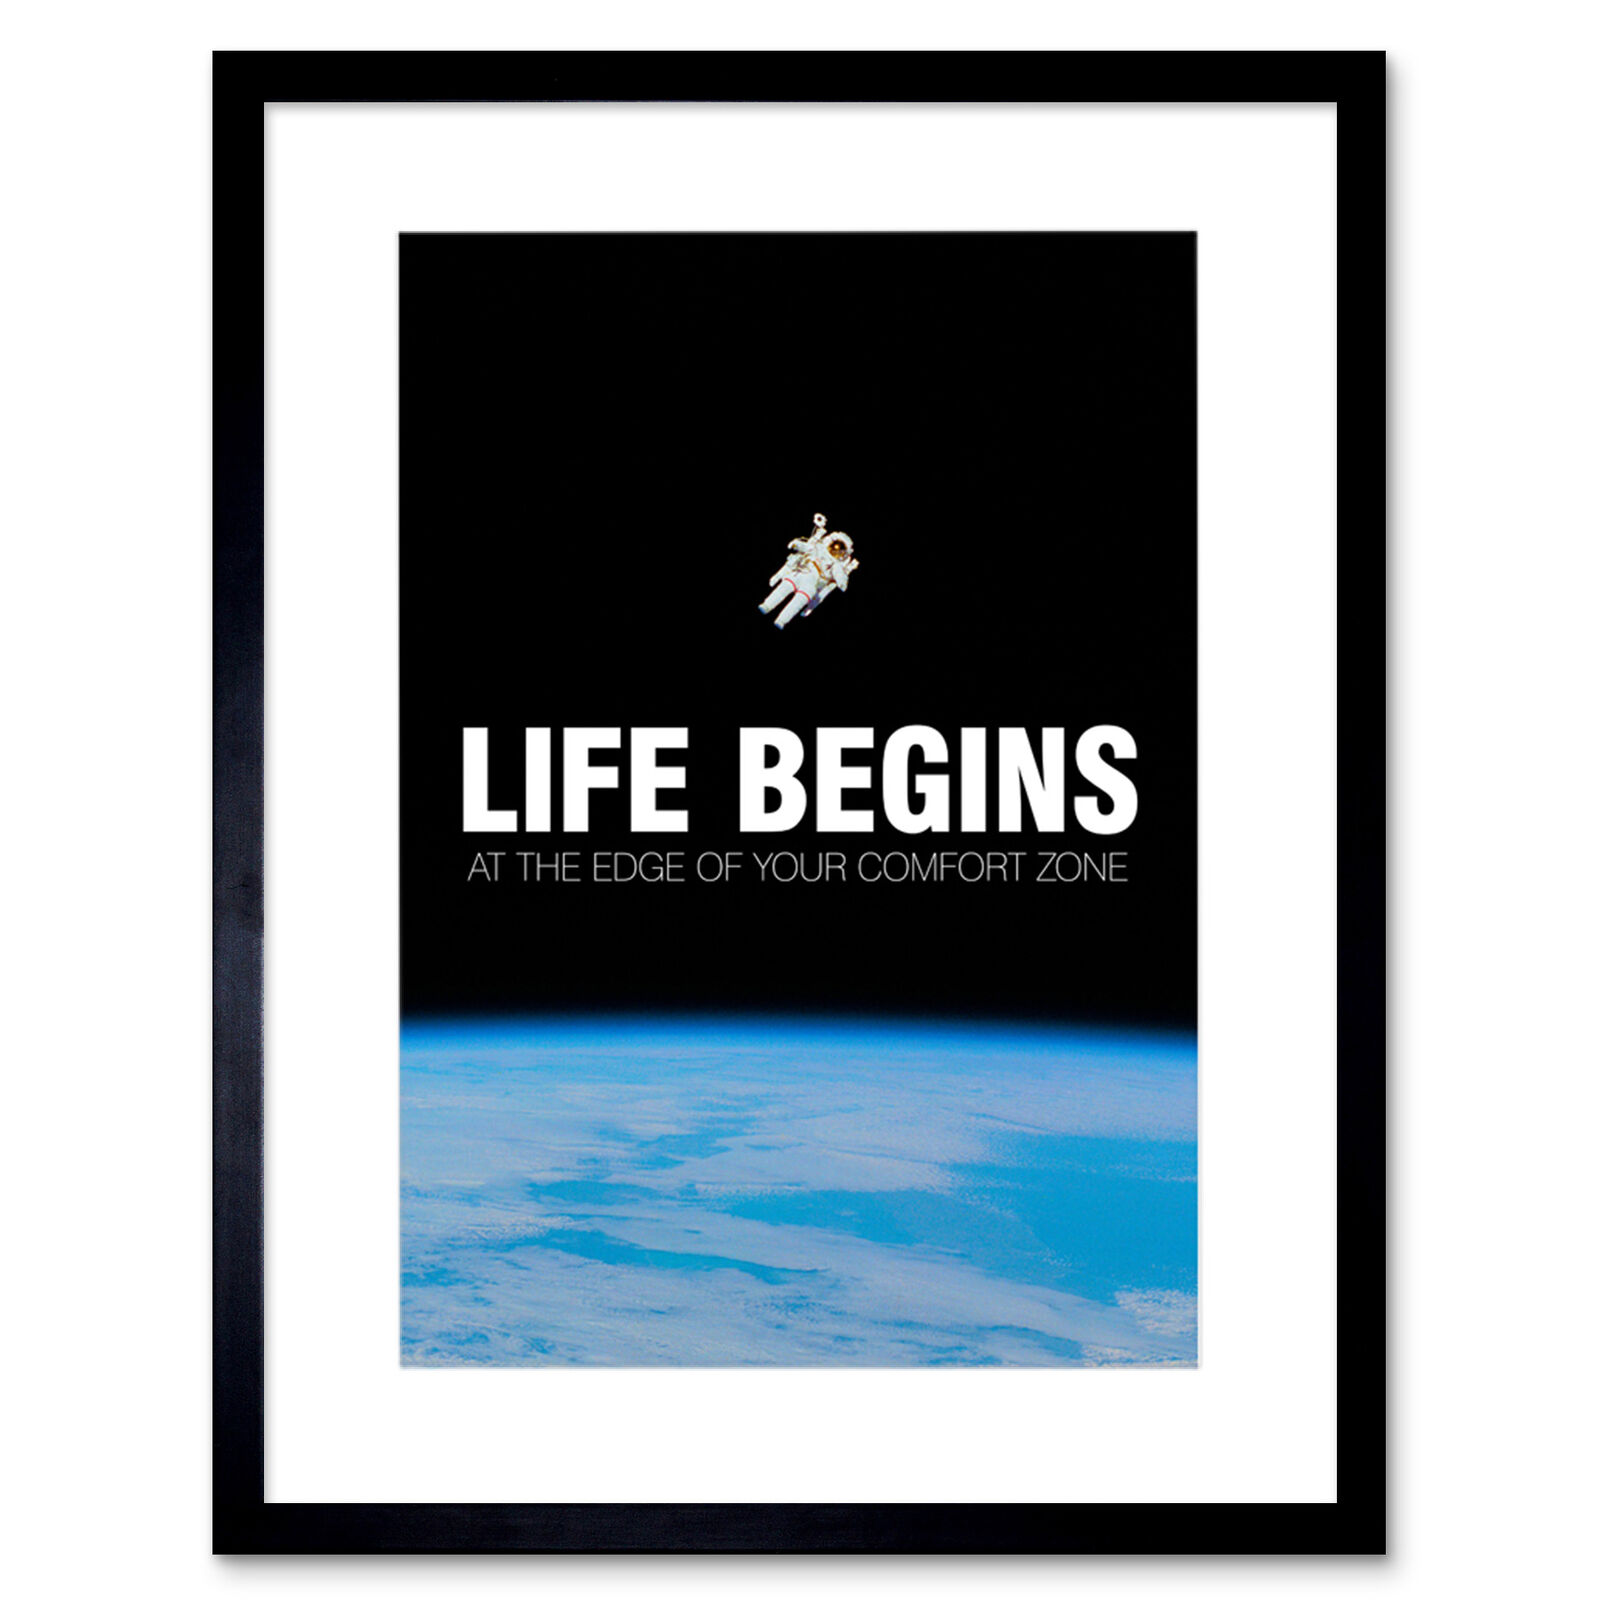 Life Begins Motivational Space 12X16 Inch Framed Art Print